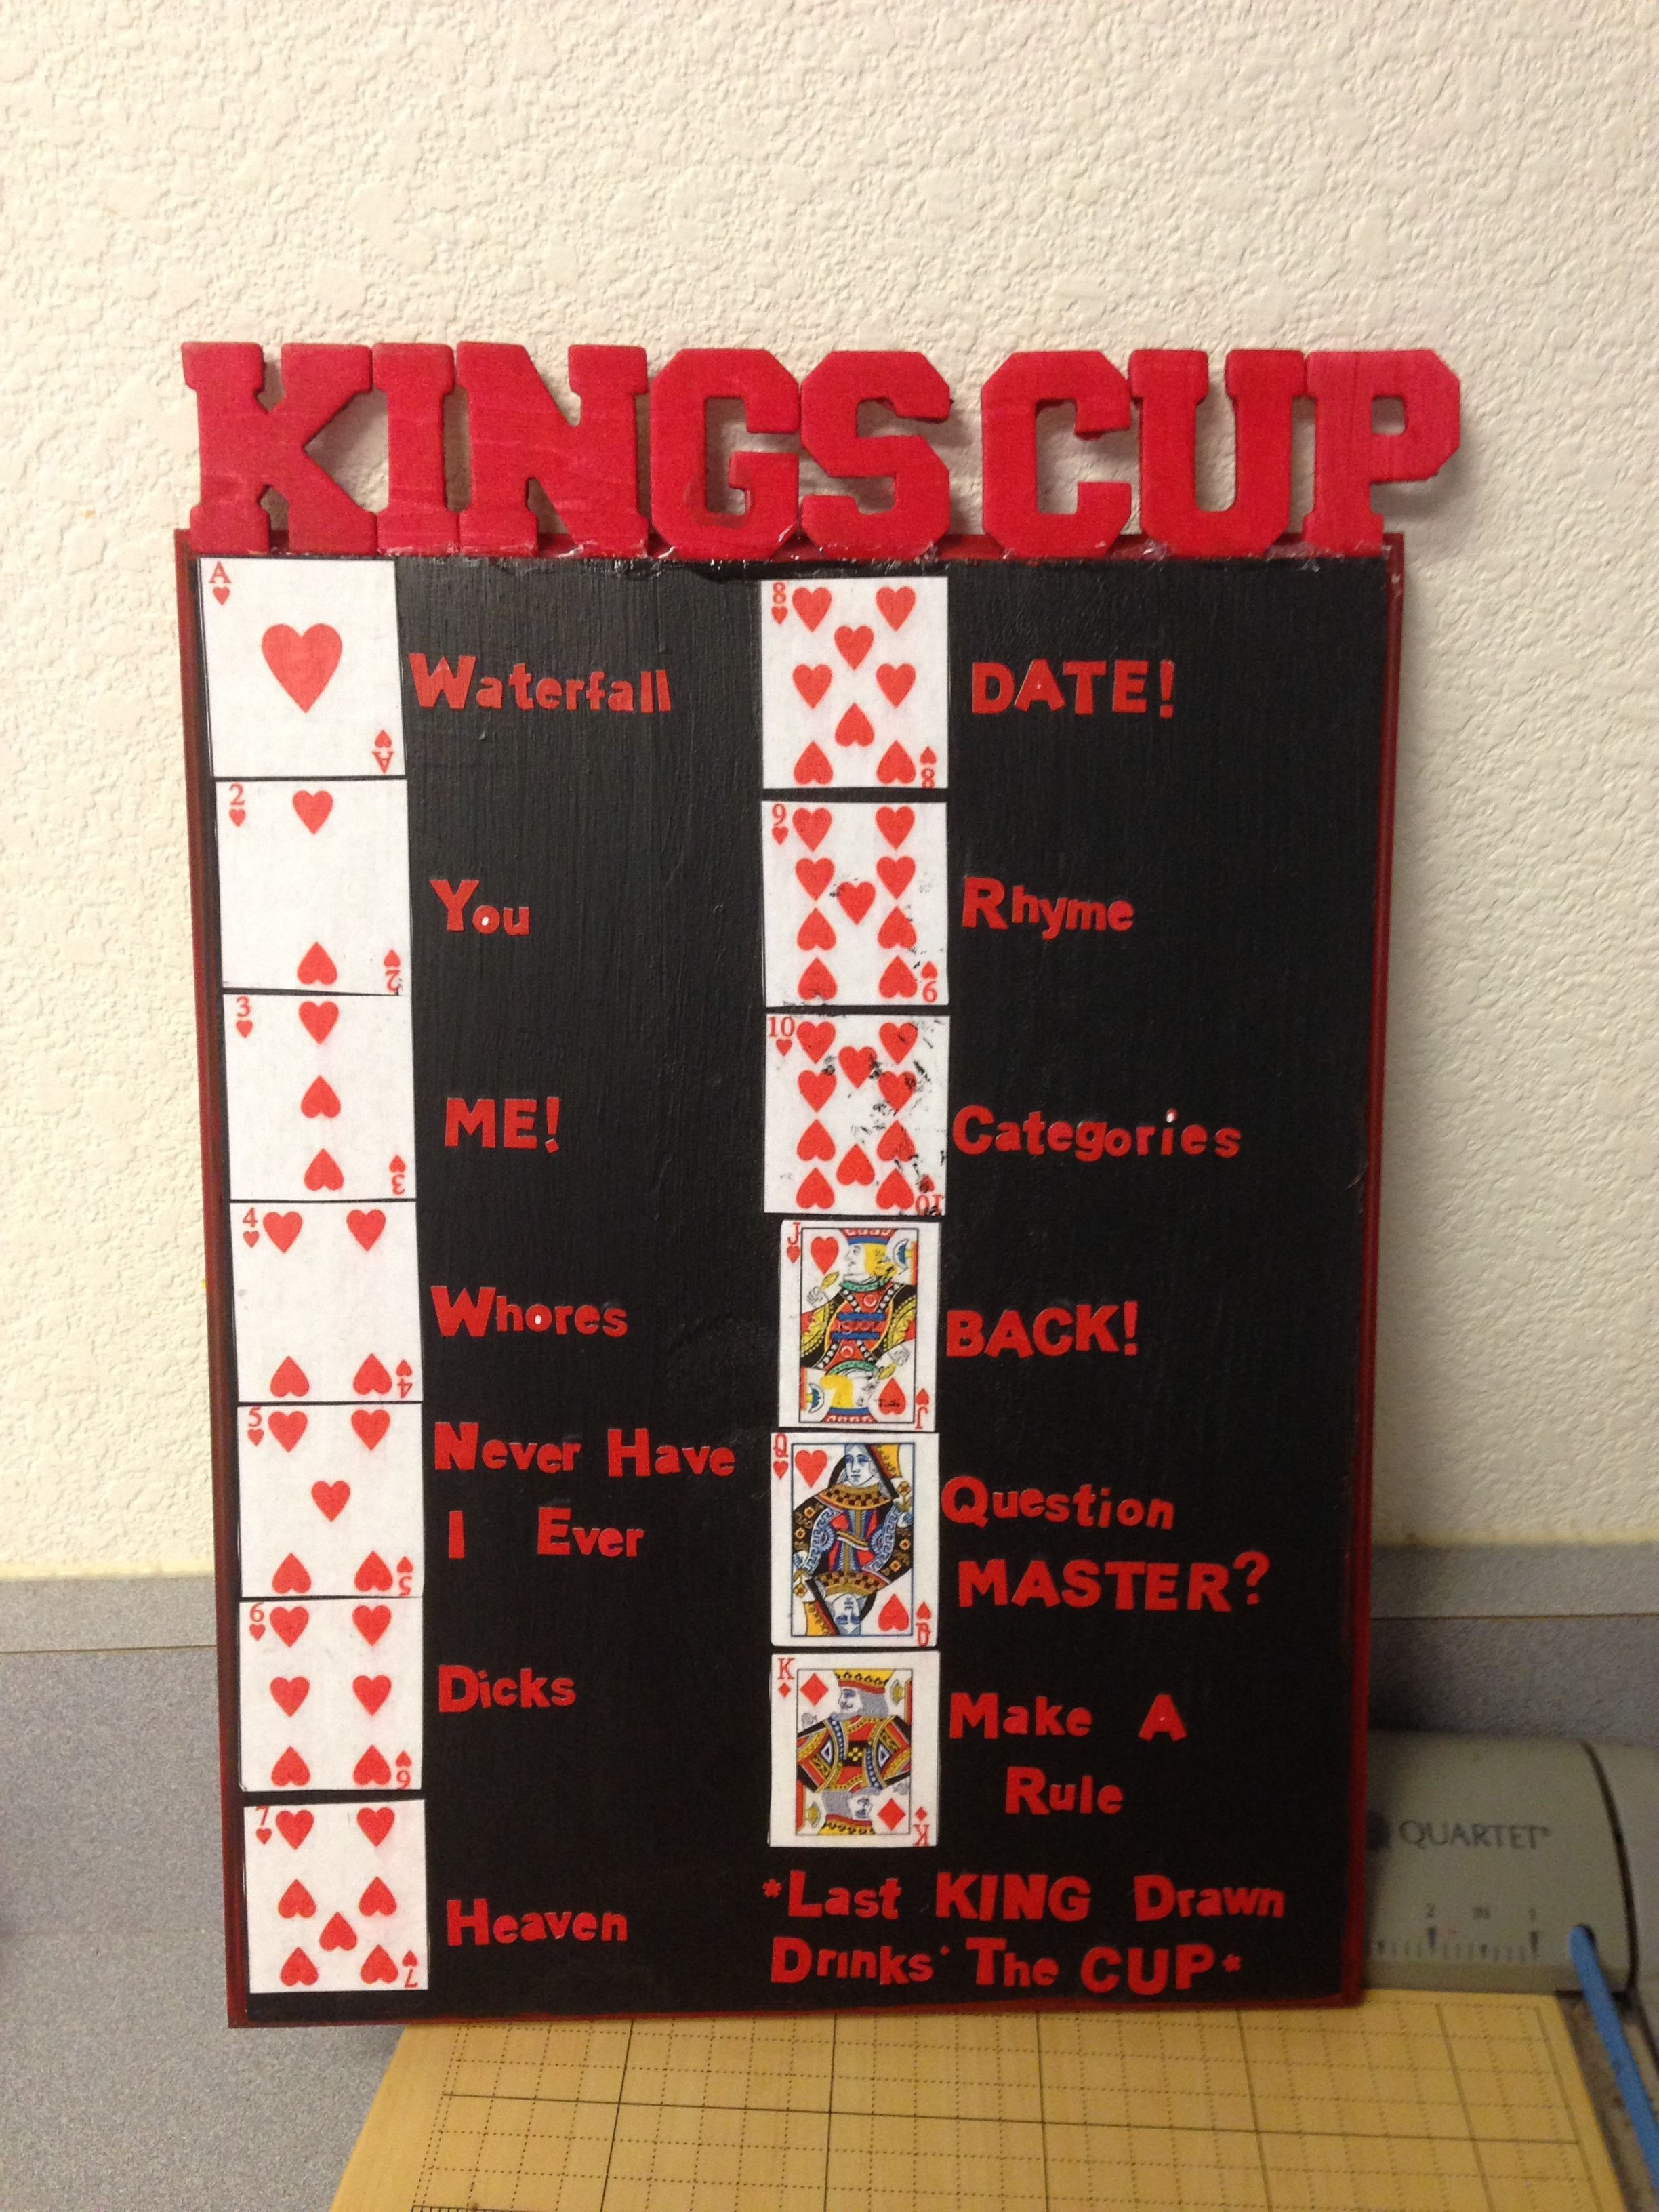 Image result for Kings Cup game instagram